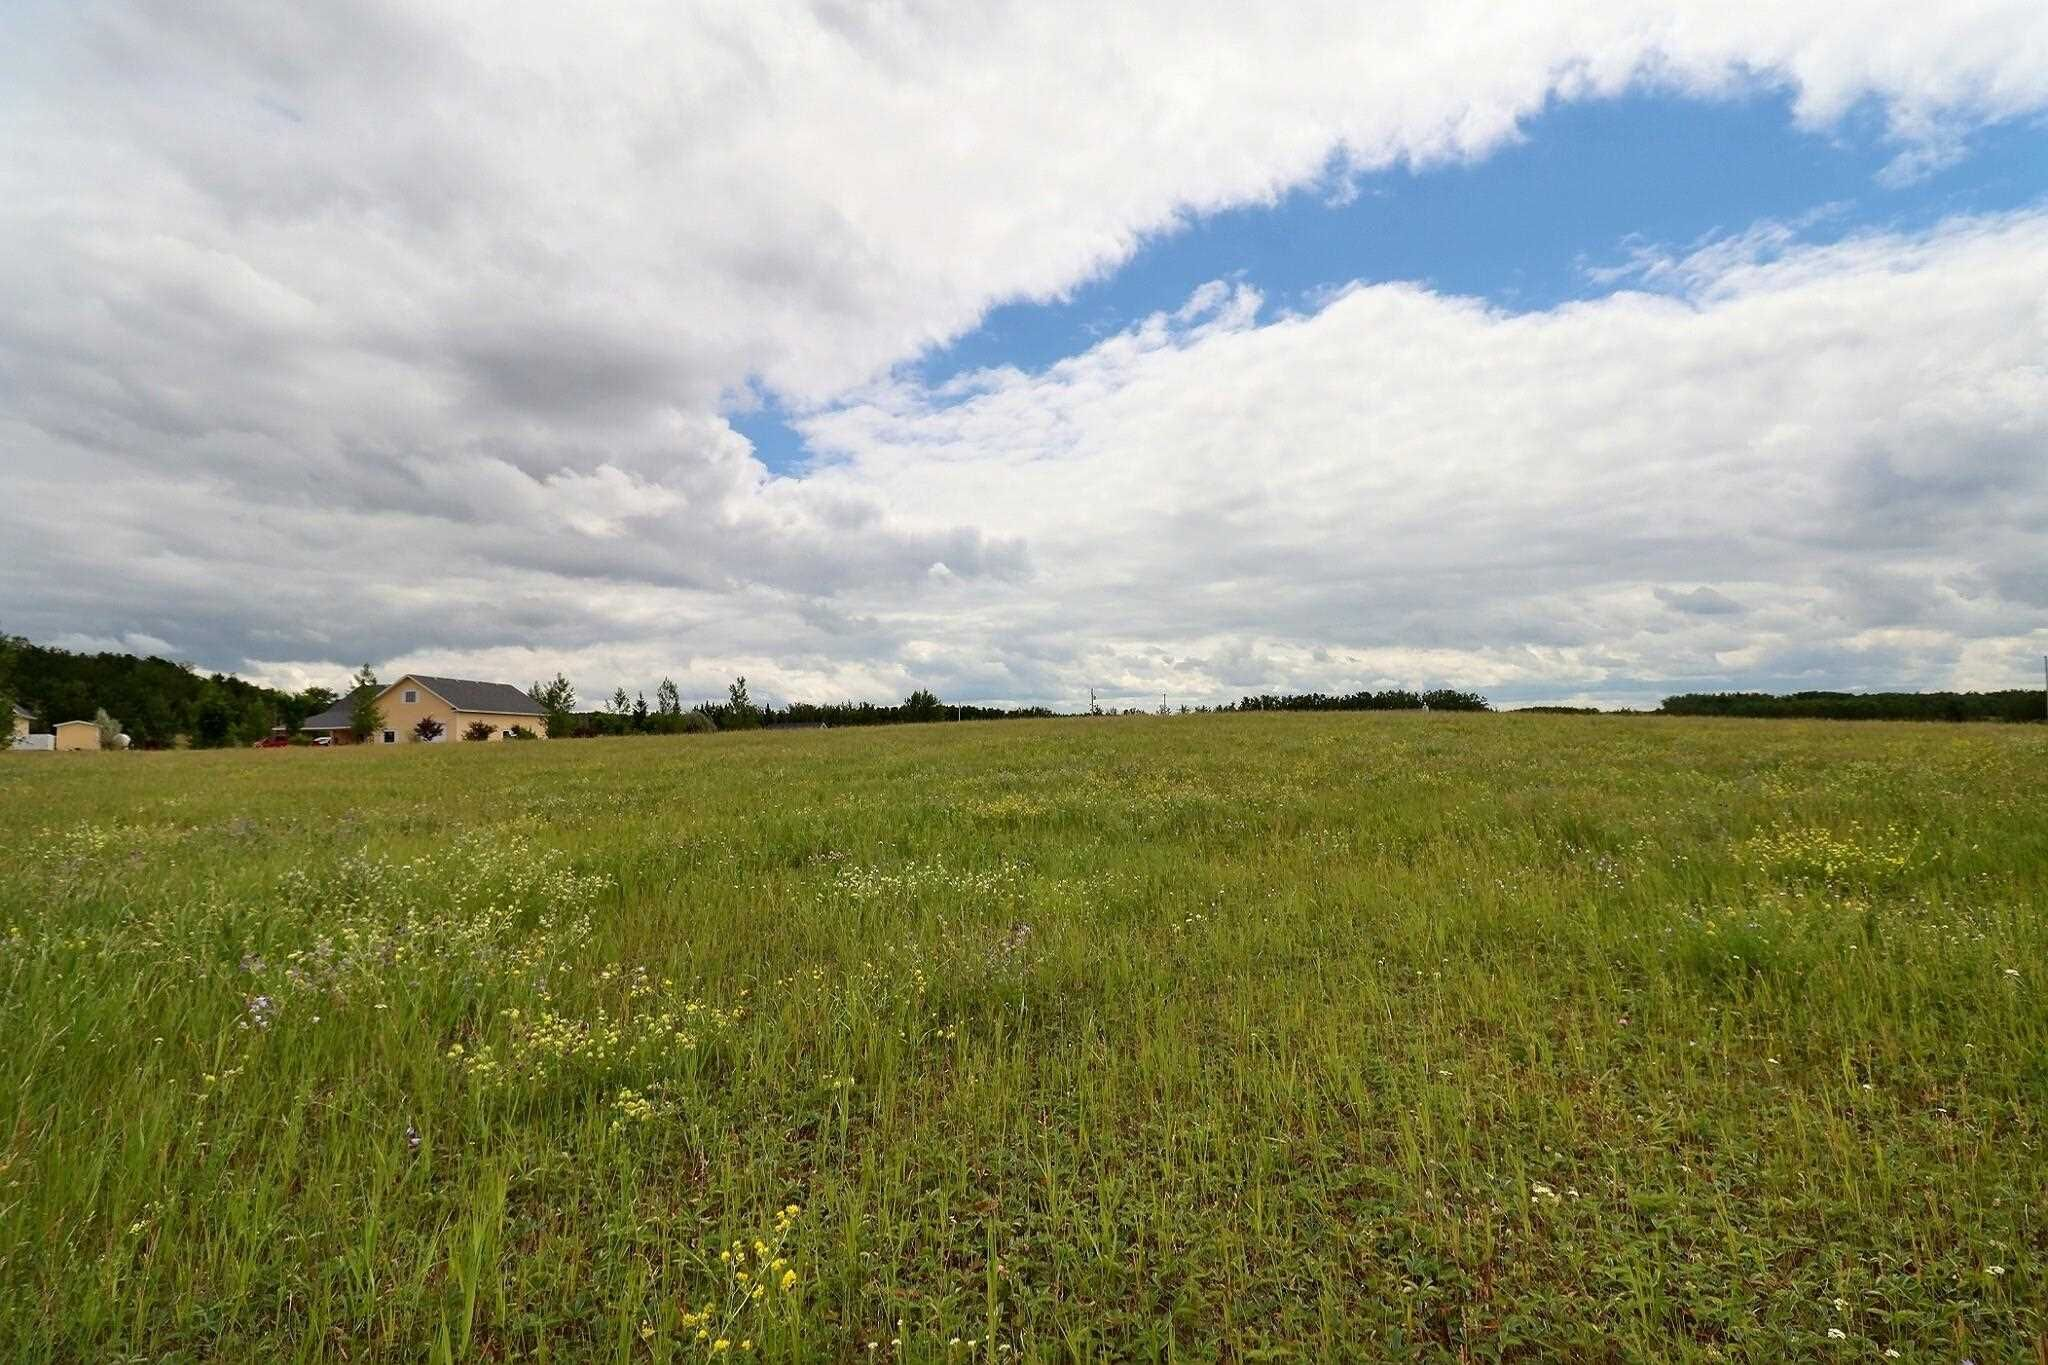 Main Photo: 122 9125 Twp Rd 574: Rural St. Paul County Rural Land/Vacant Lot for sale : MLS®# E4253159